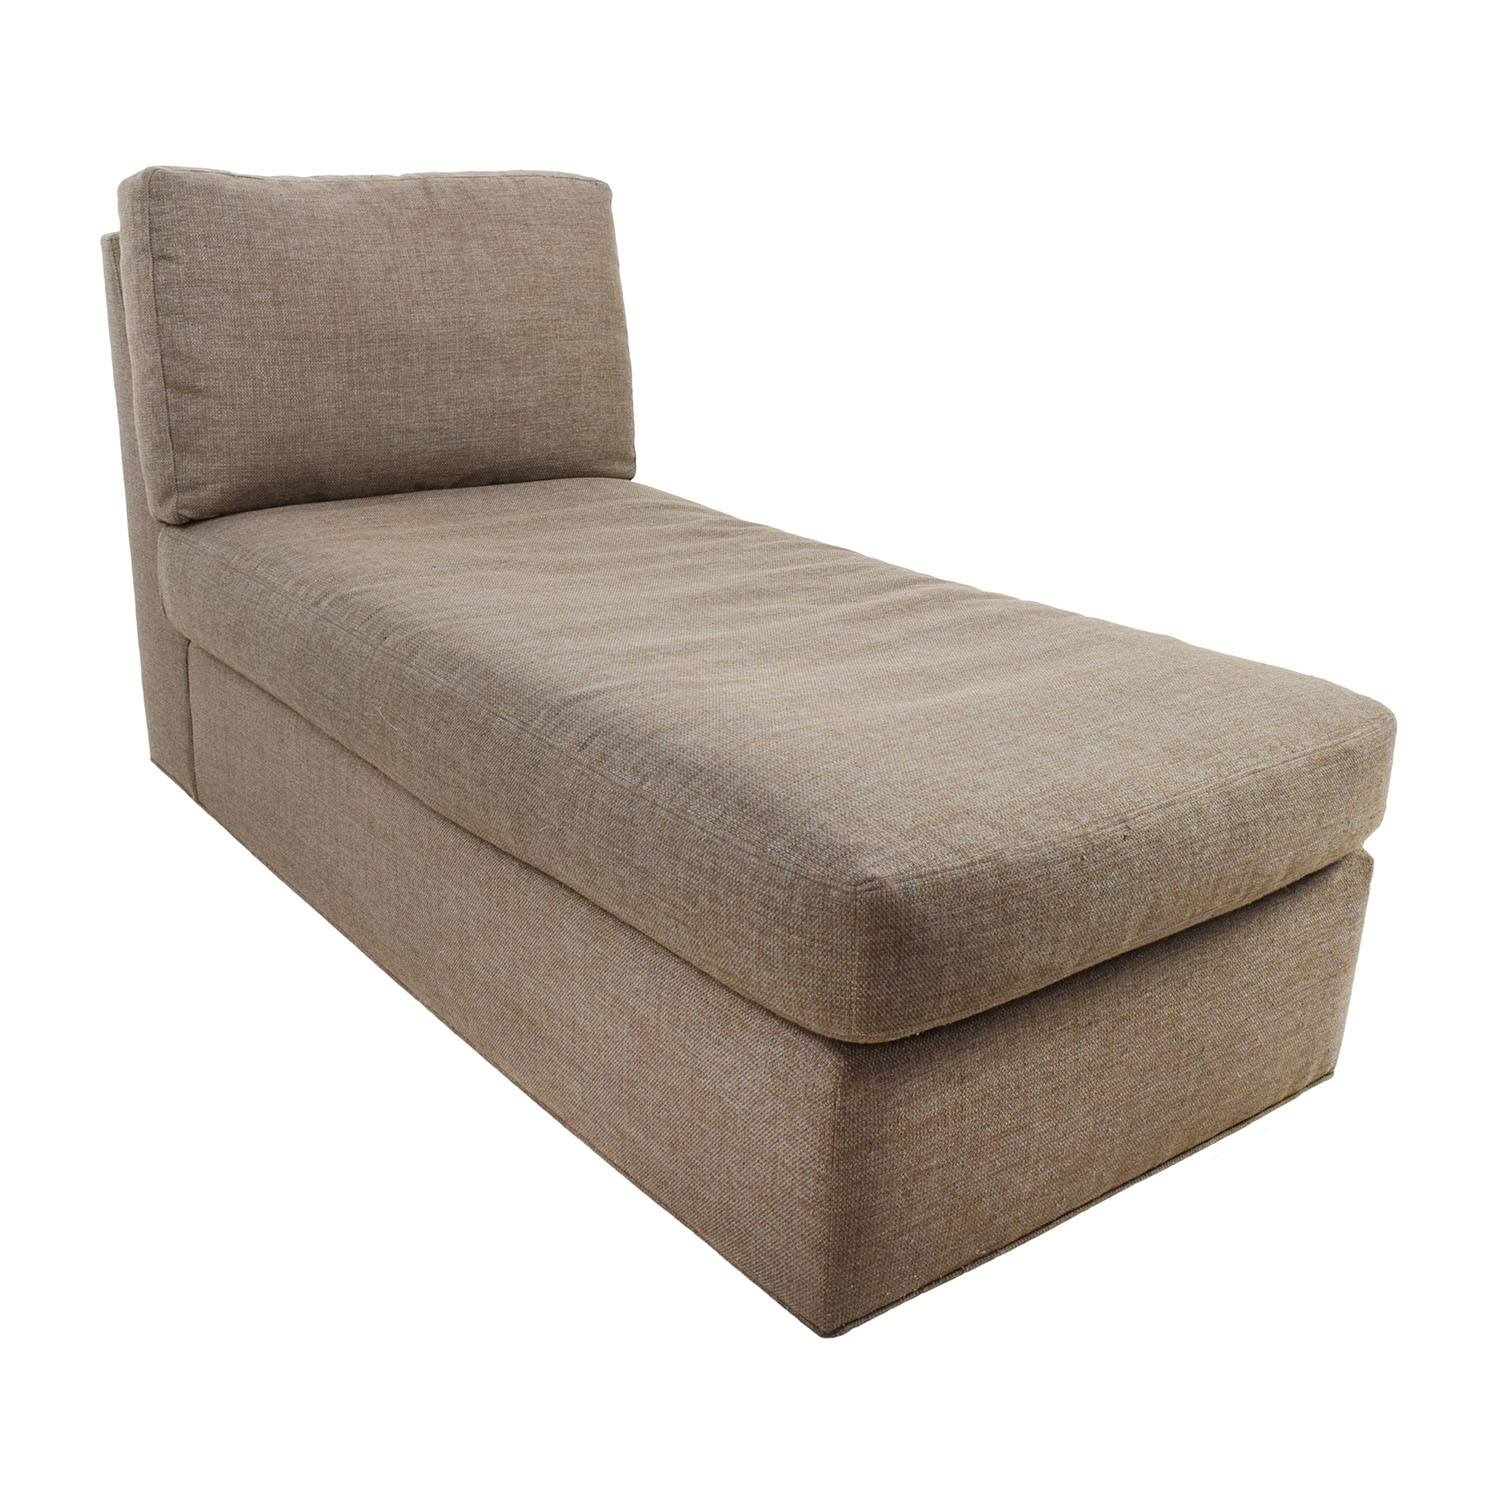 75 off crate and barrel crate barrel brown chaise for Brown chaise sofa